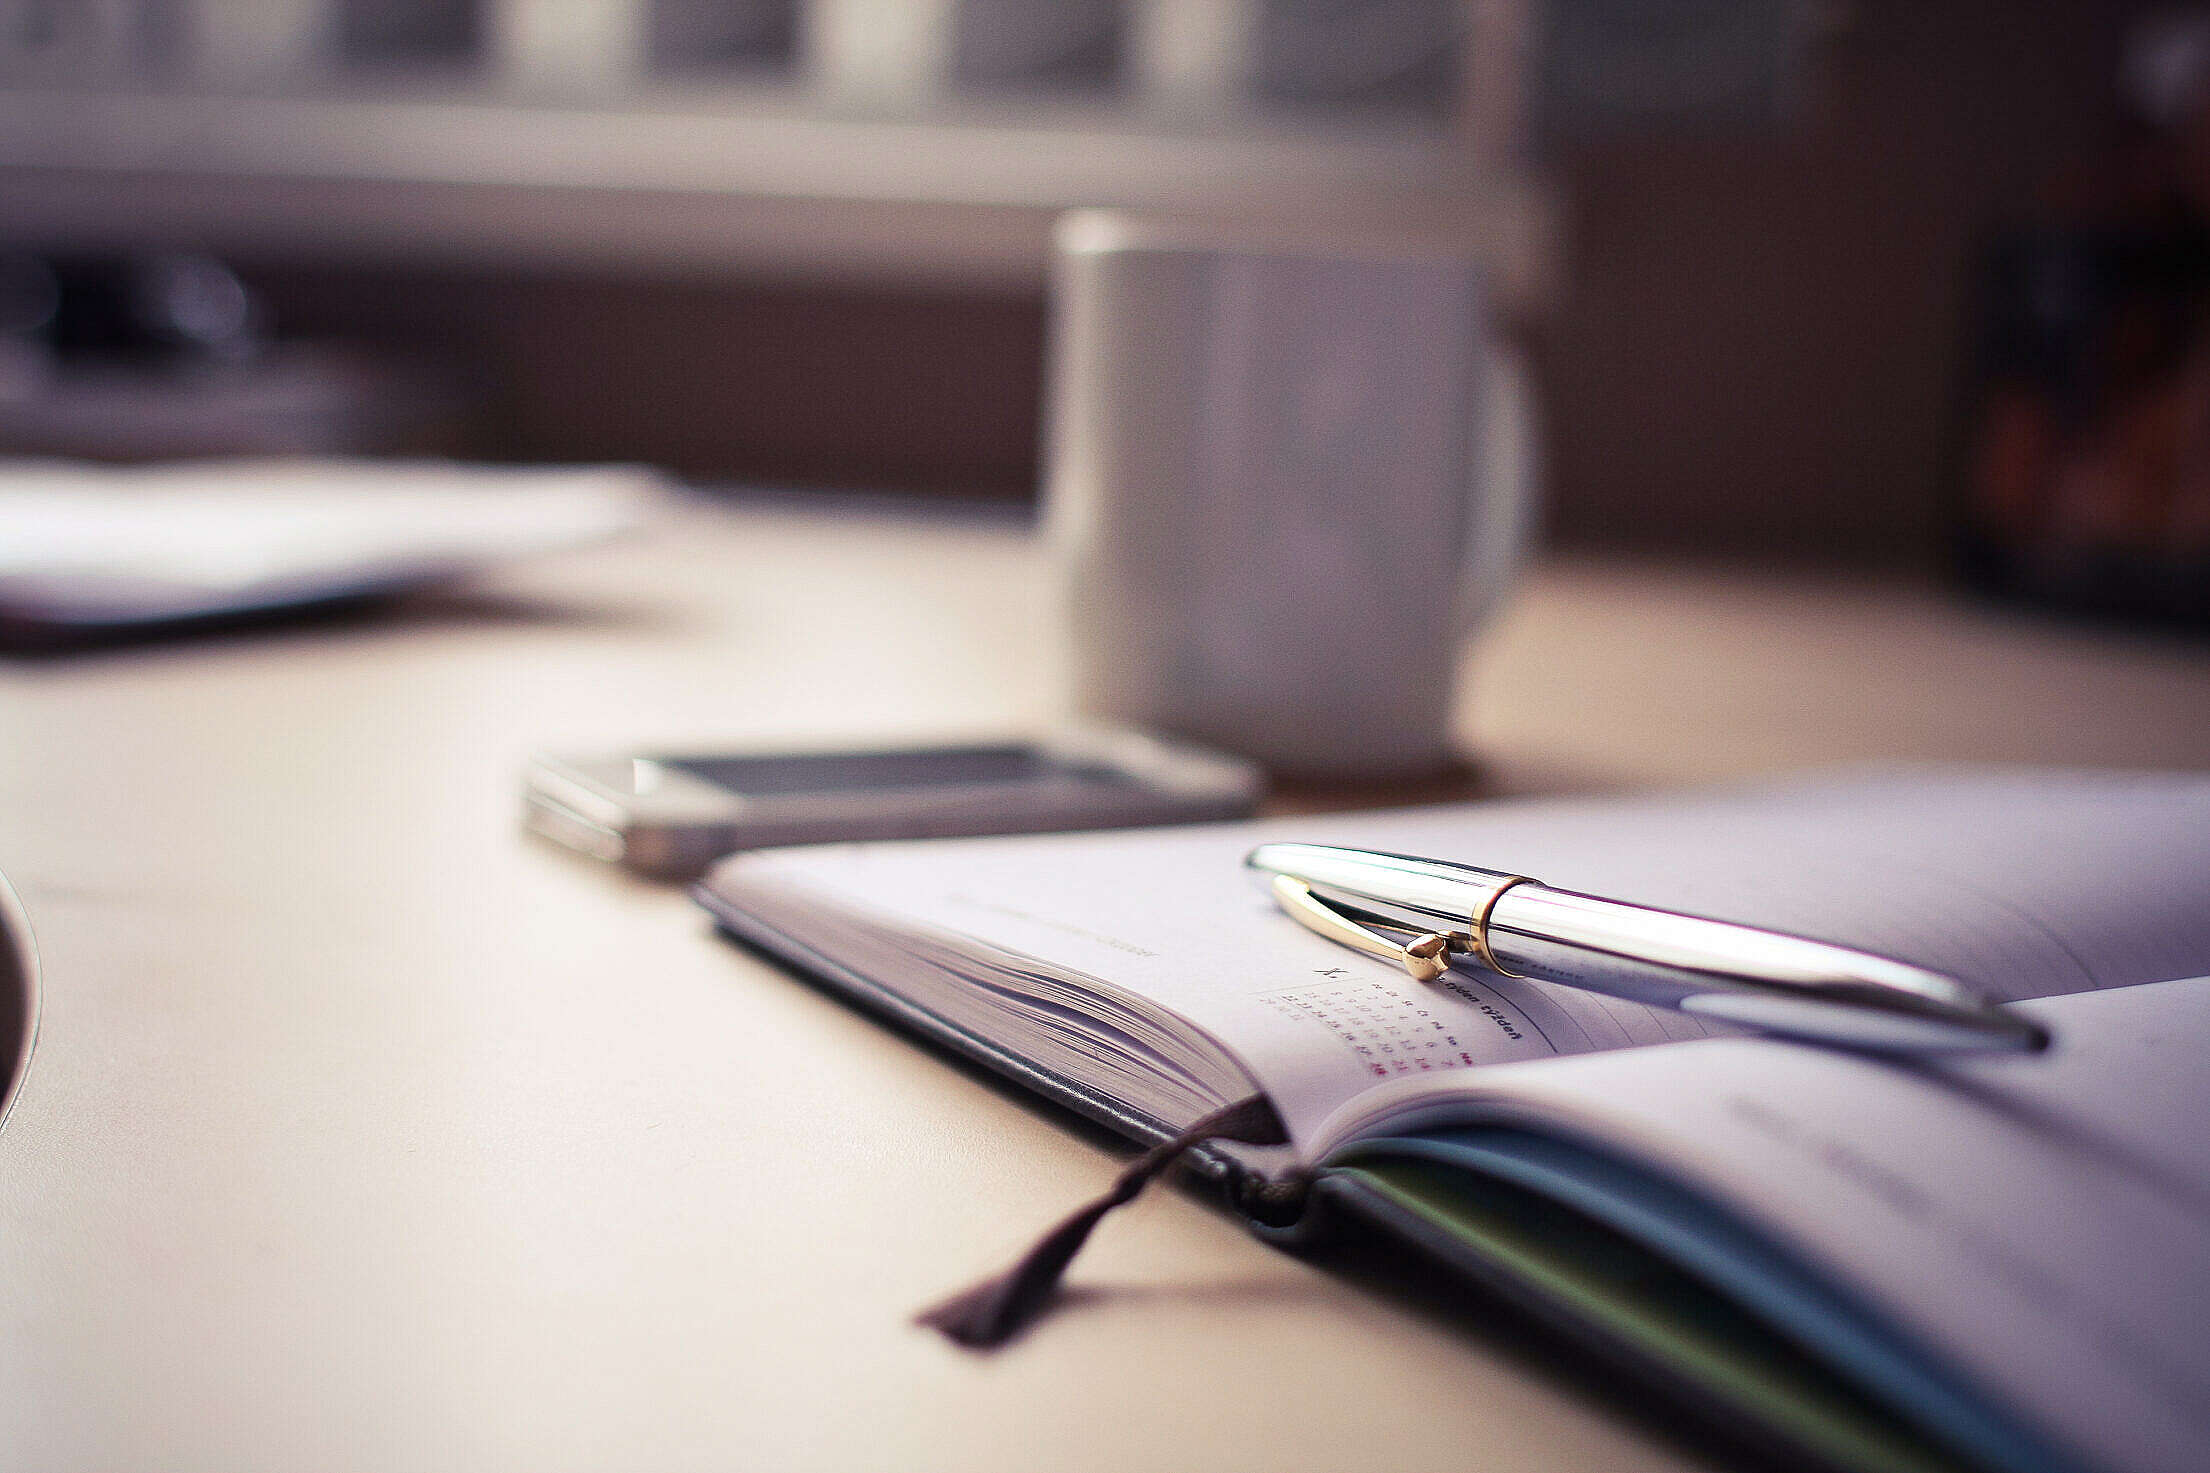 Luxury Silver Pen with a Business Diary Free Stock Photo